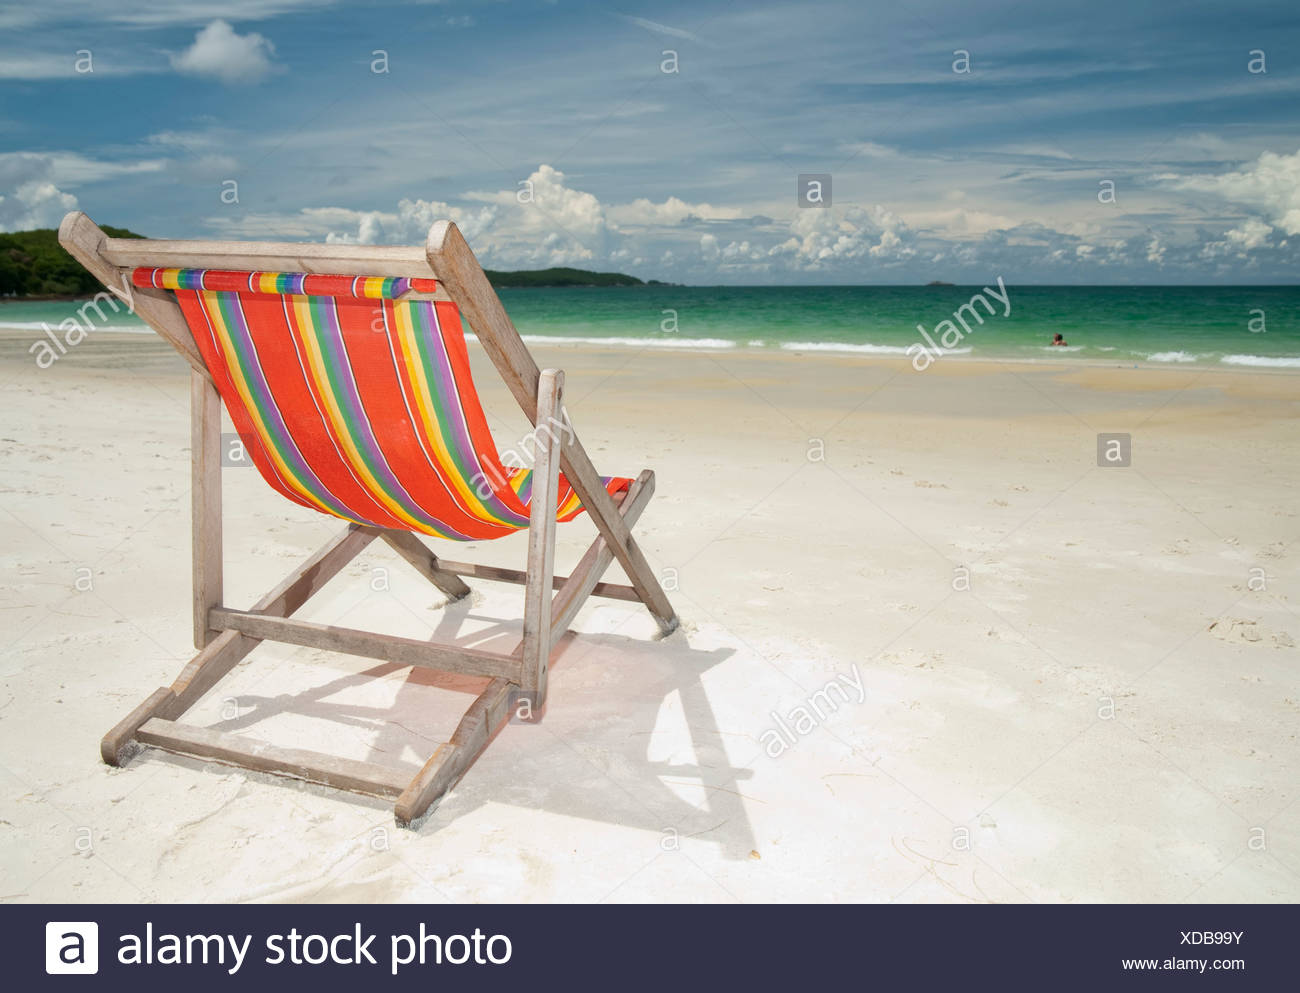 Deck chair white background stock photos deck chair for Table 99 koh samui